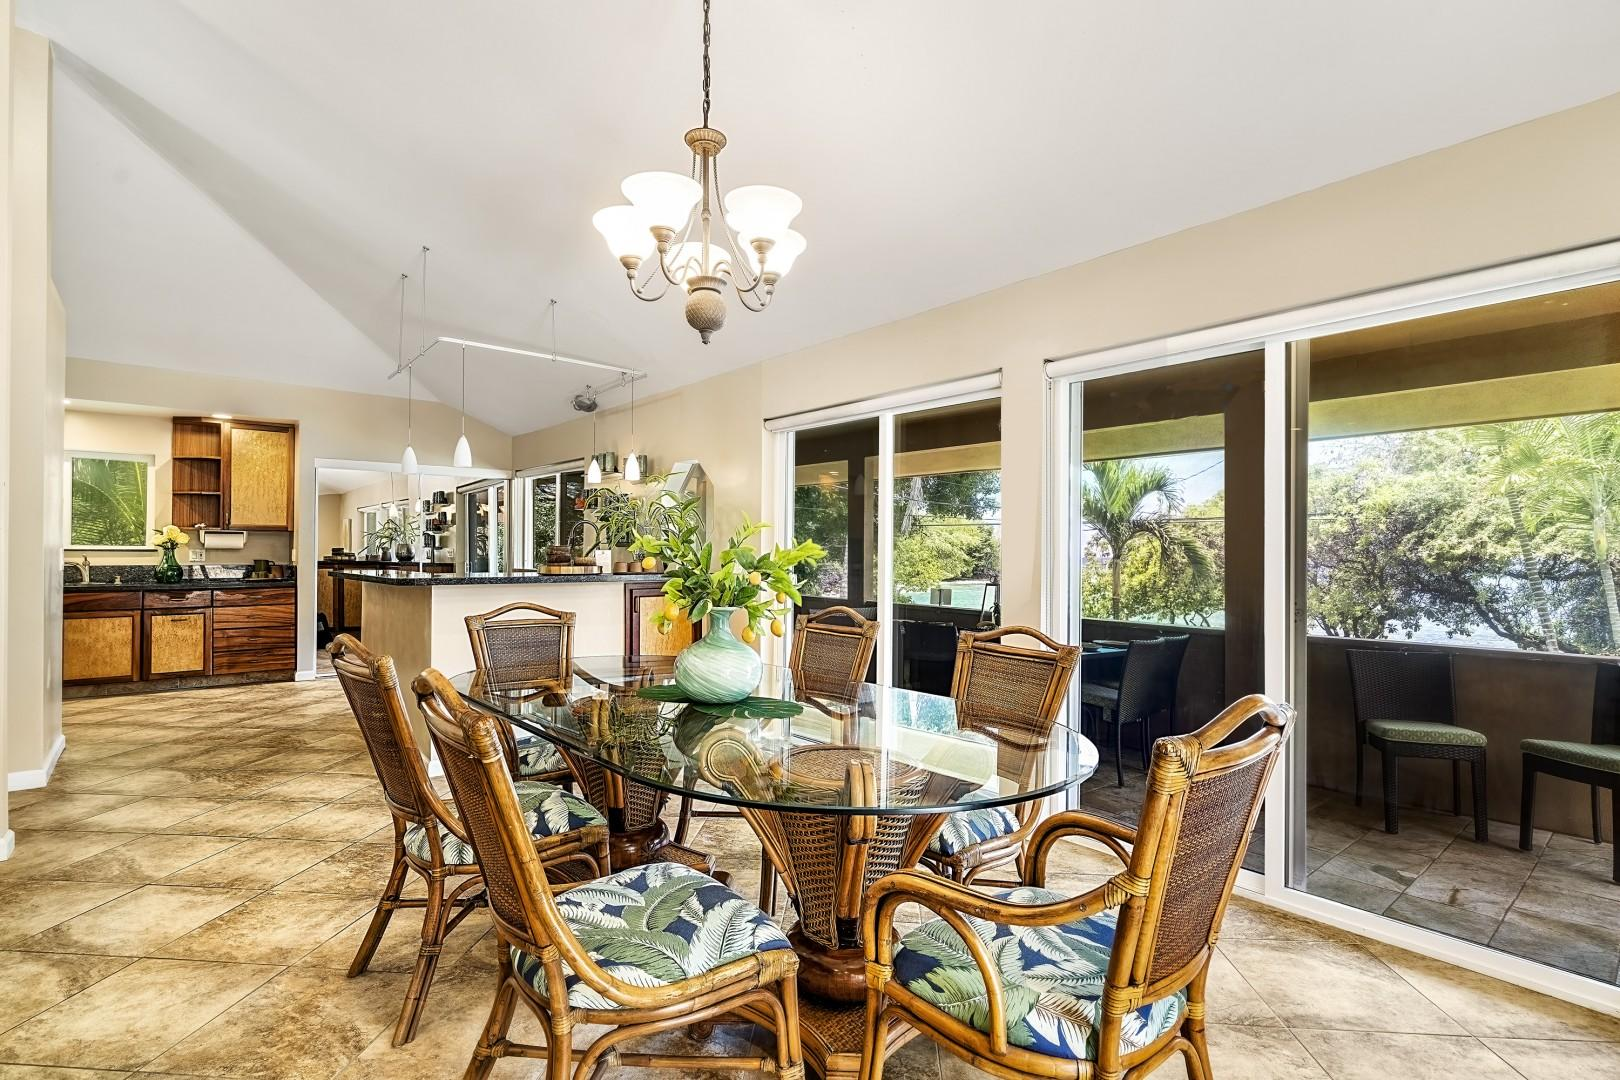 Indoor dining area with A/C and tropical styling